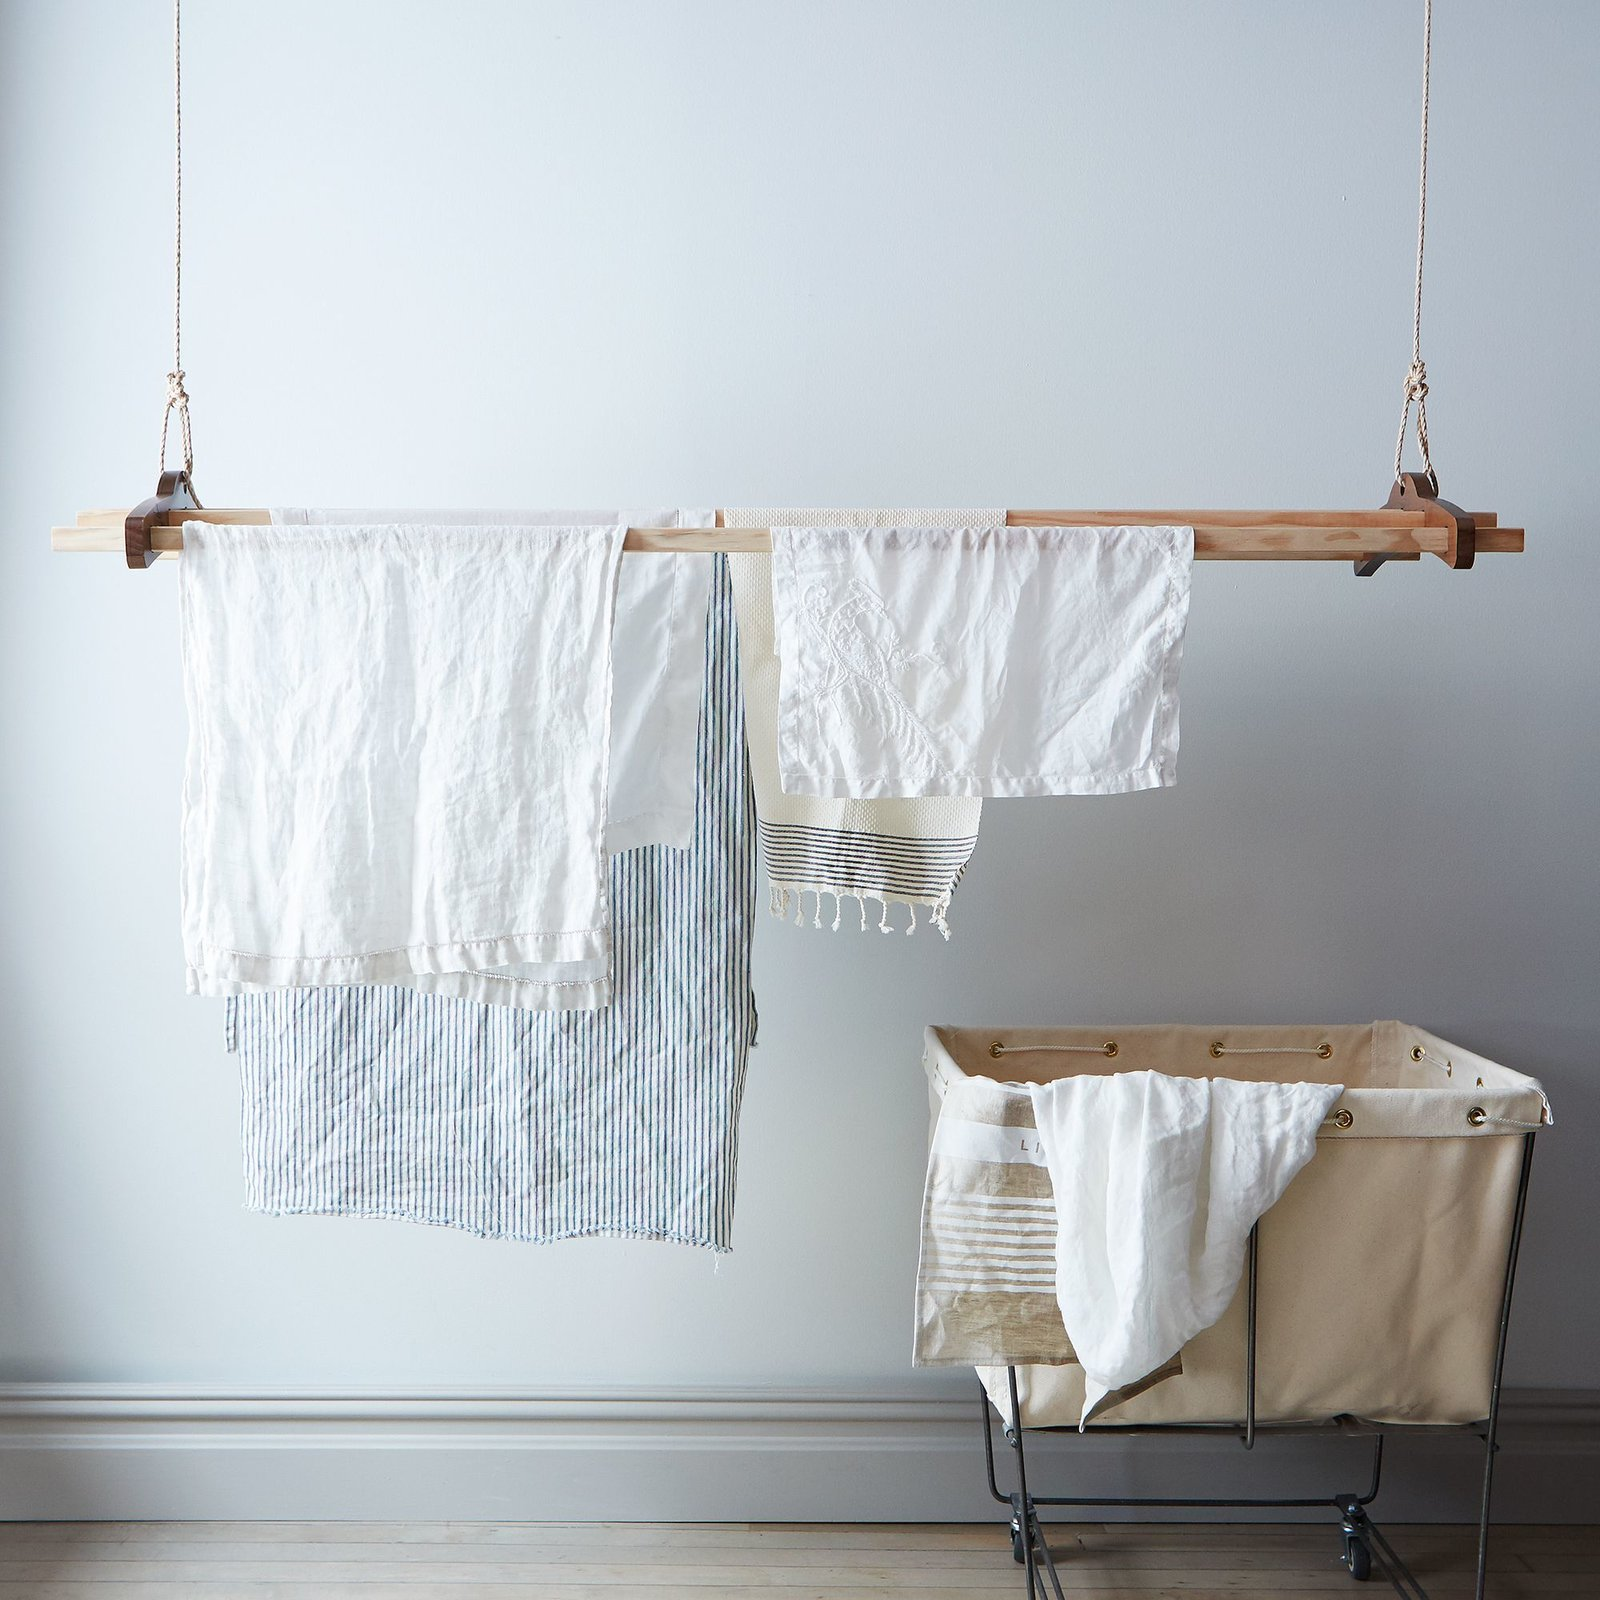 Laundry Room #Food52 #laundry #rack  Photos from Laundry